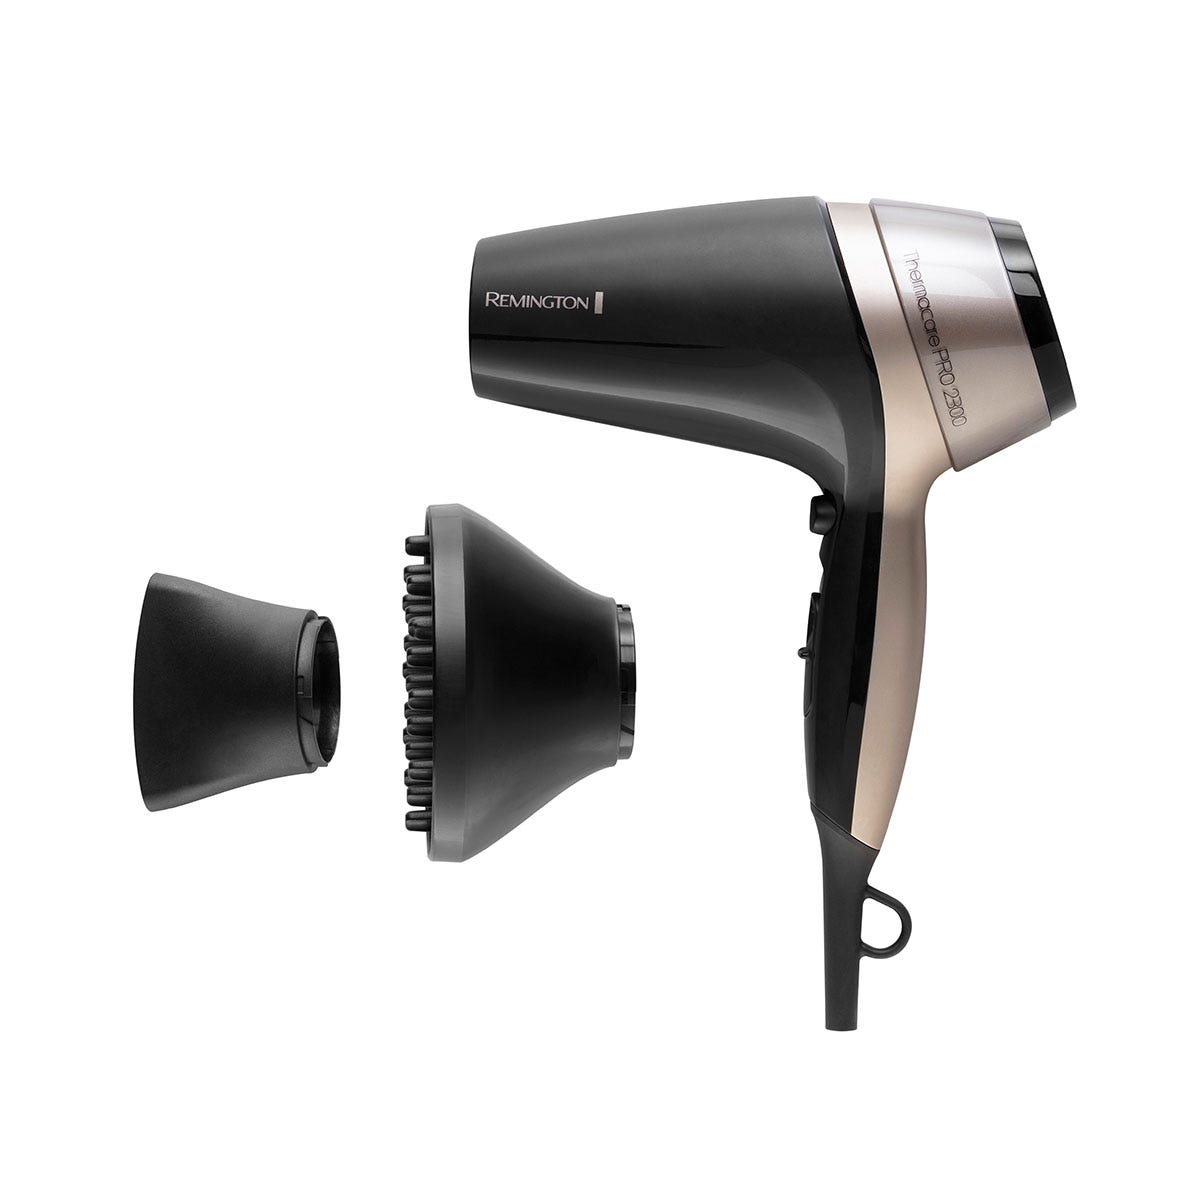 Remington D5715 Thermacare Pro 2300 Hairdryer - Black & Pink